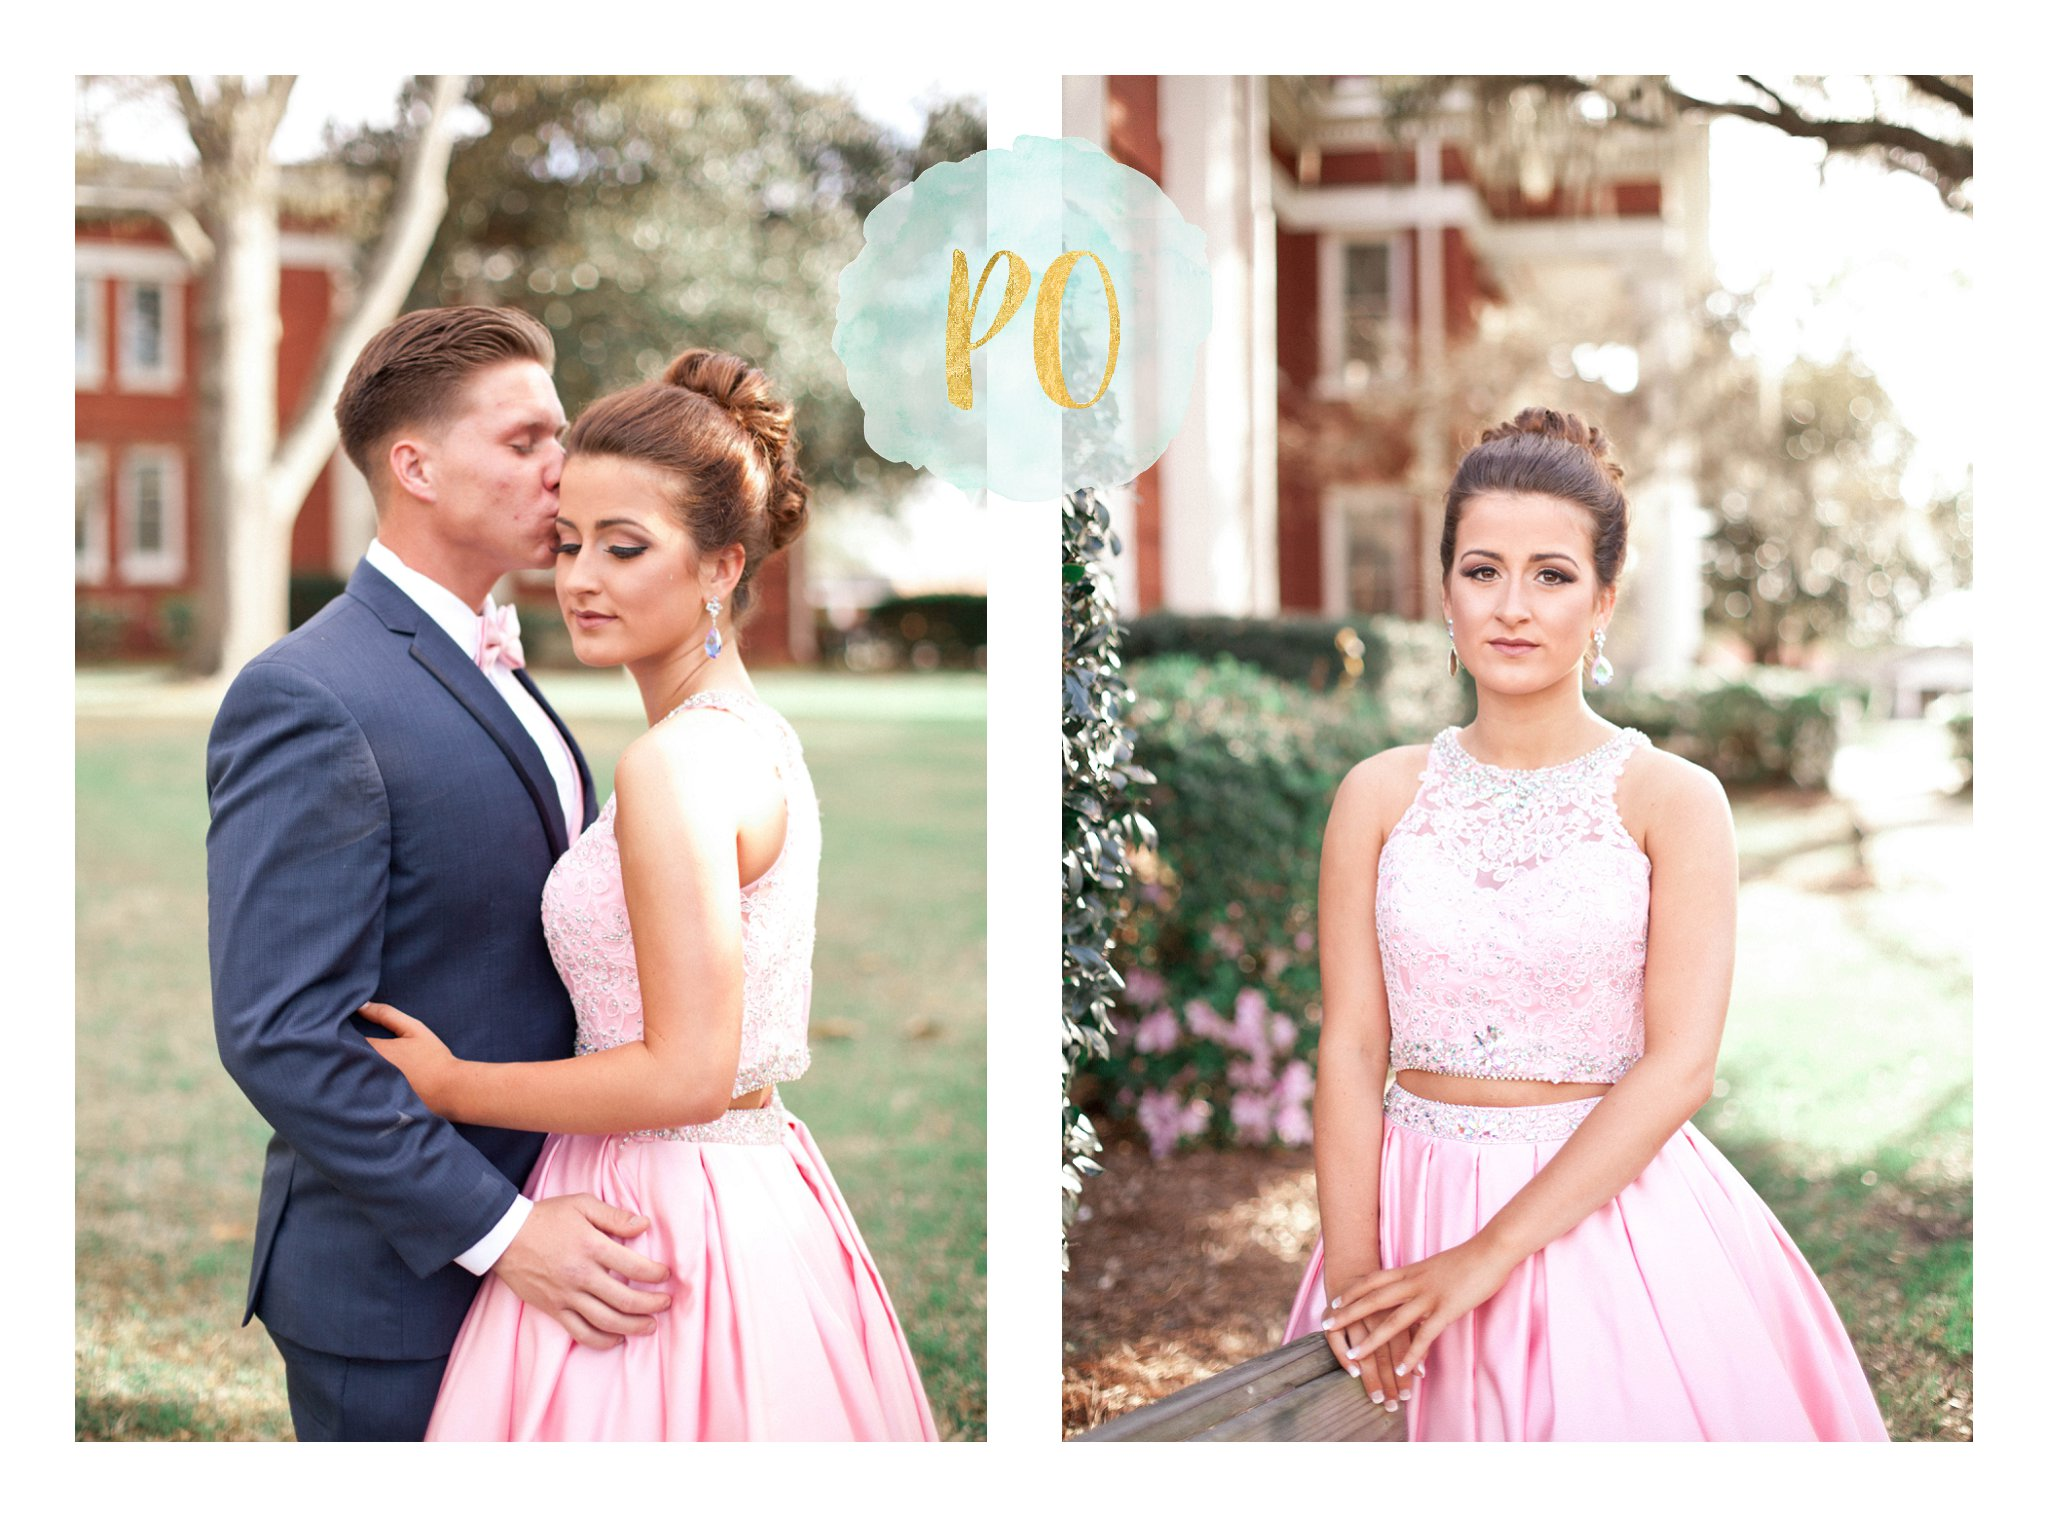 kylee_christian_prom_poured_out_photography-54_WEB.jpg